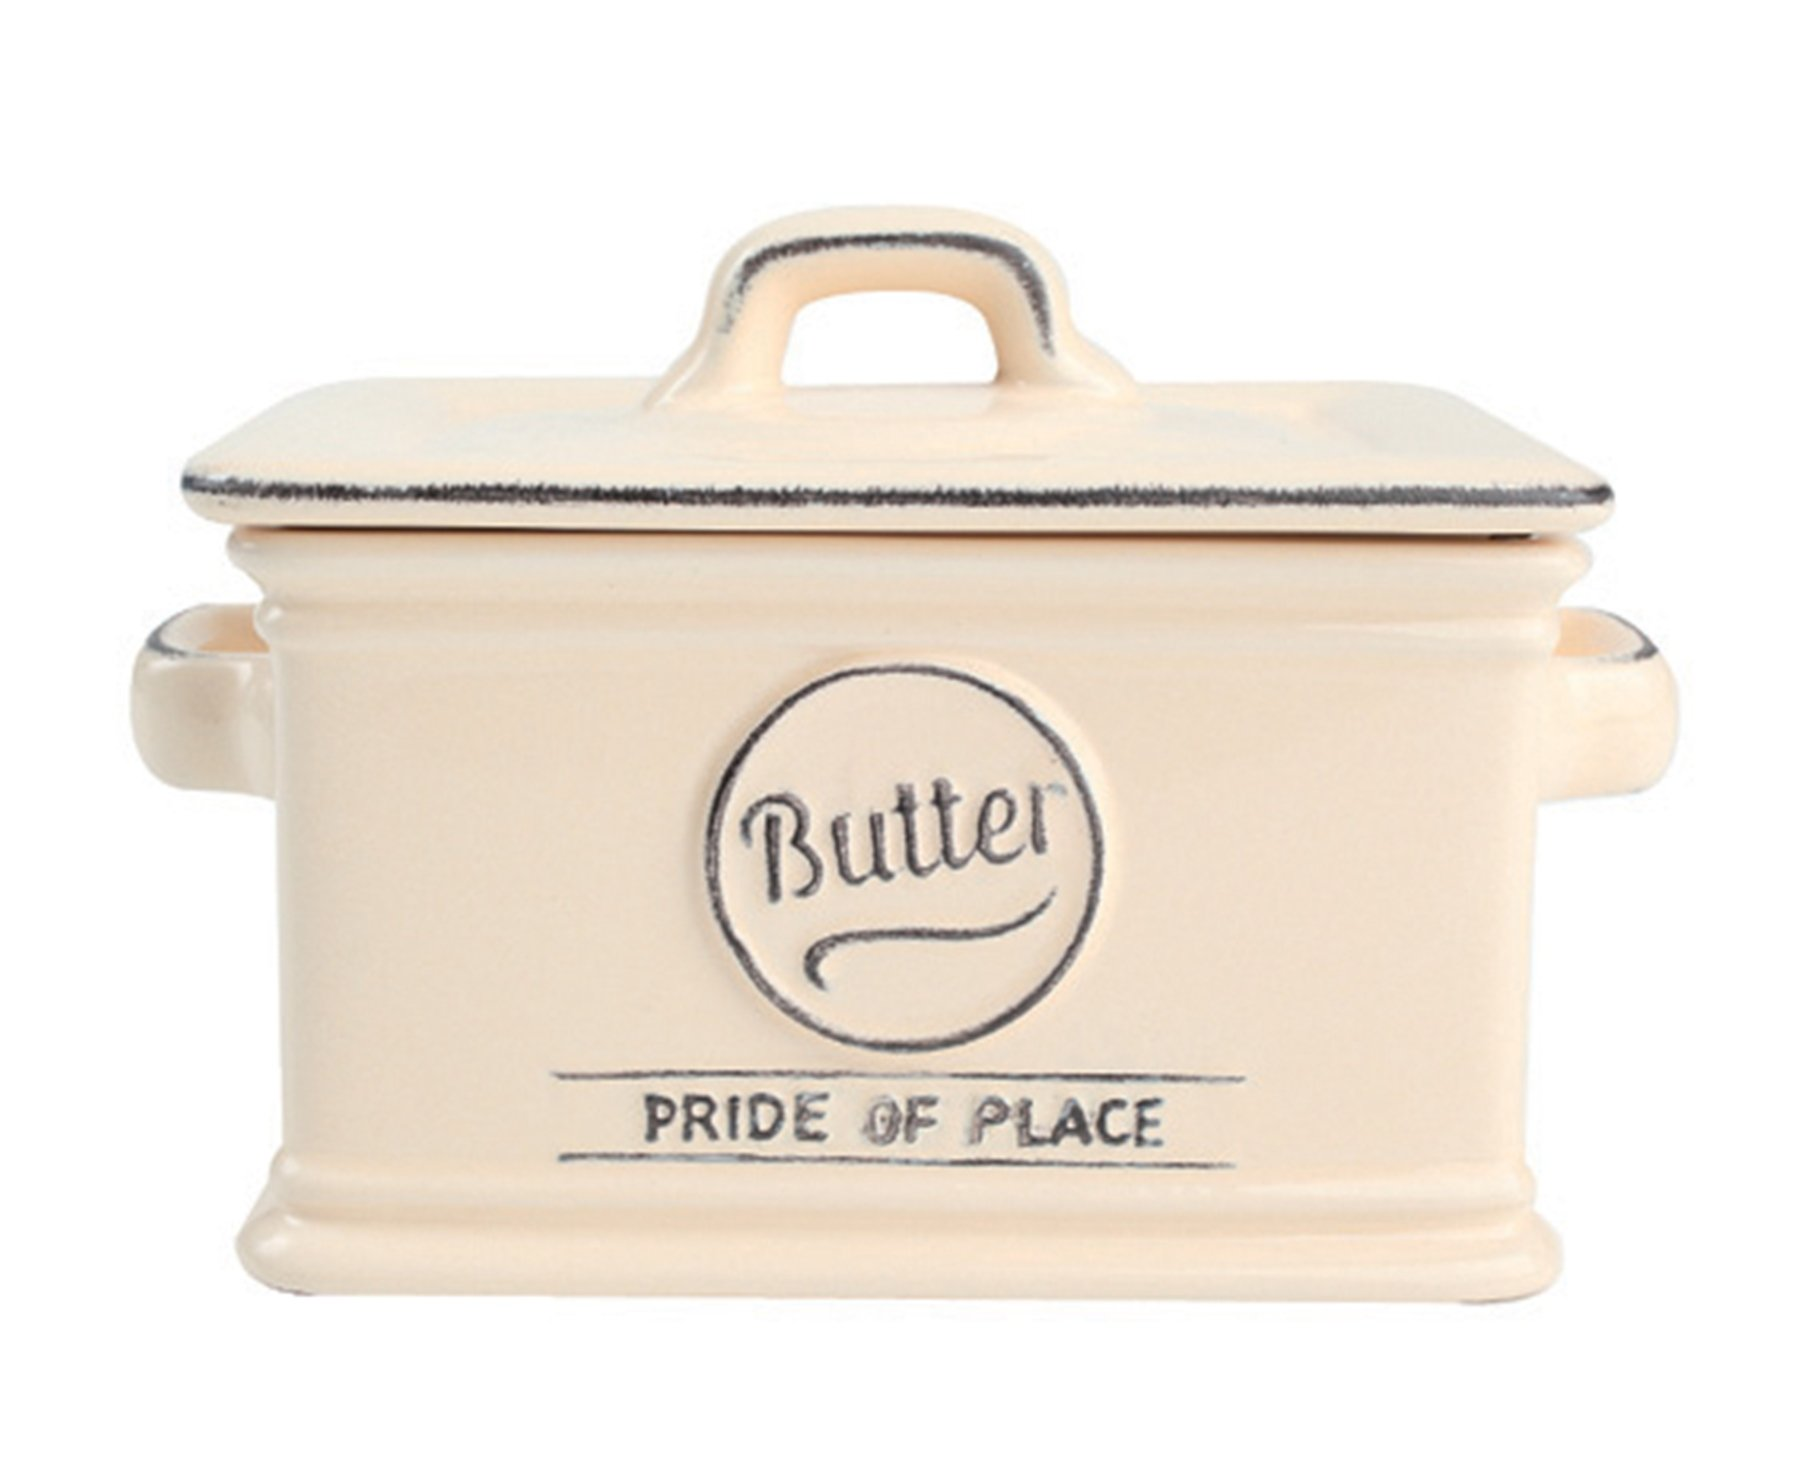 T&G Woodware Pride of Place Old Cream Butter Dish 18020